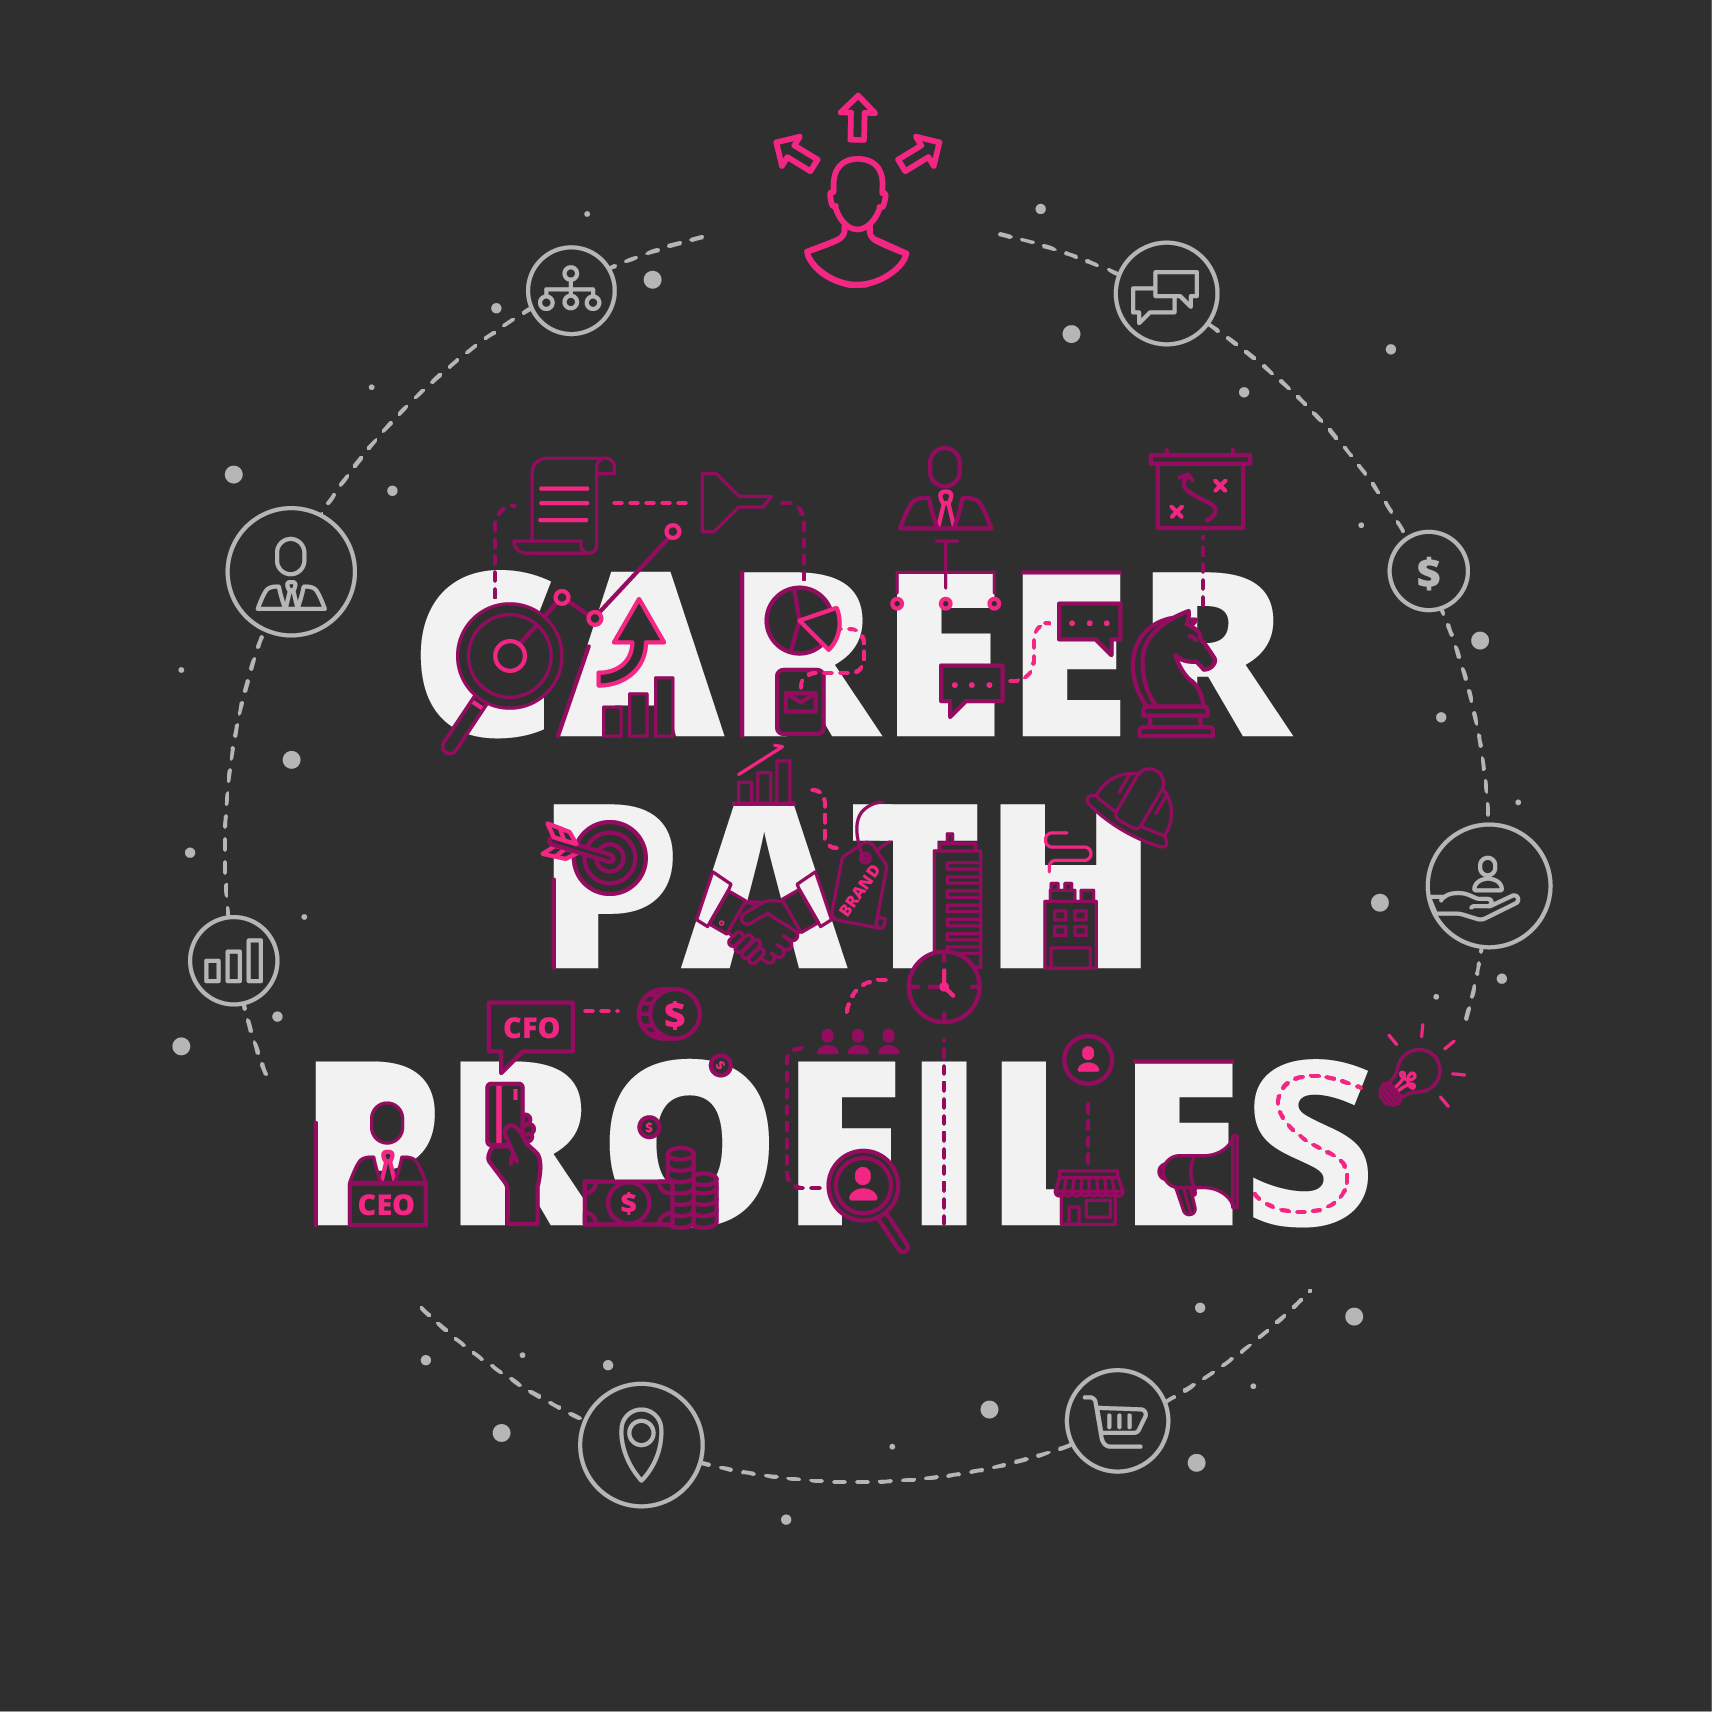 Career path profiles